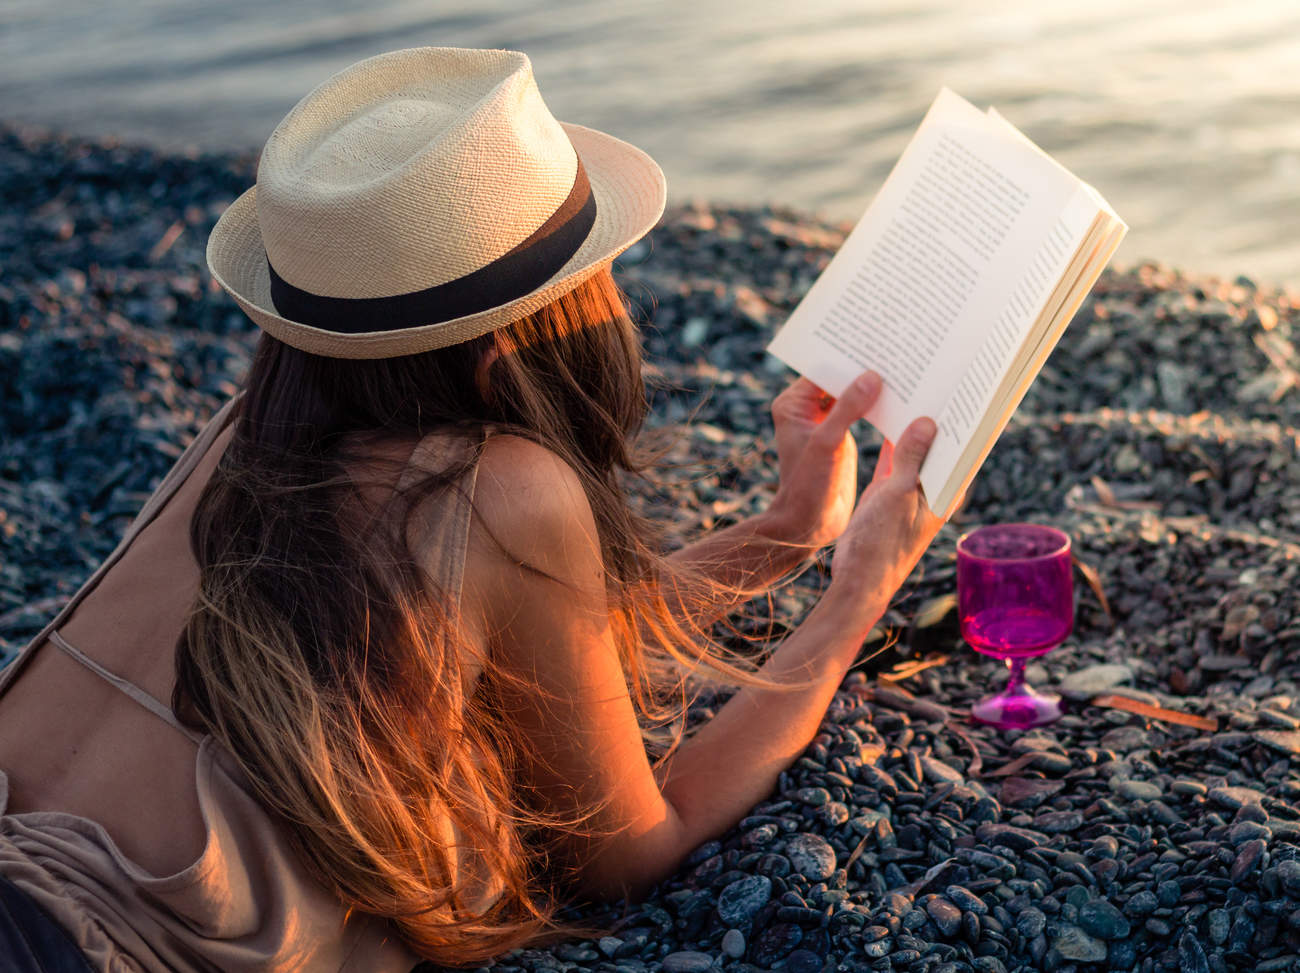 best-beach-reads books reading relax